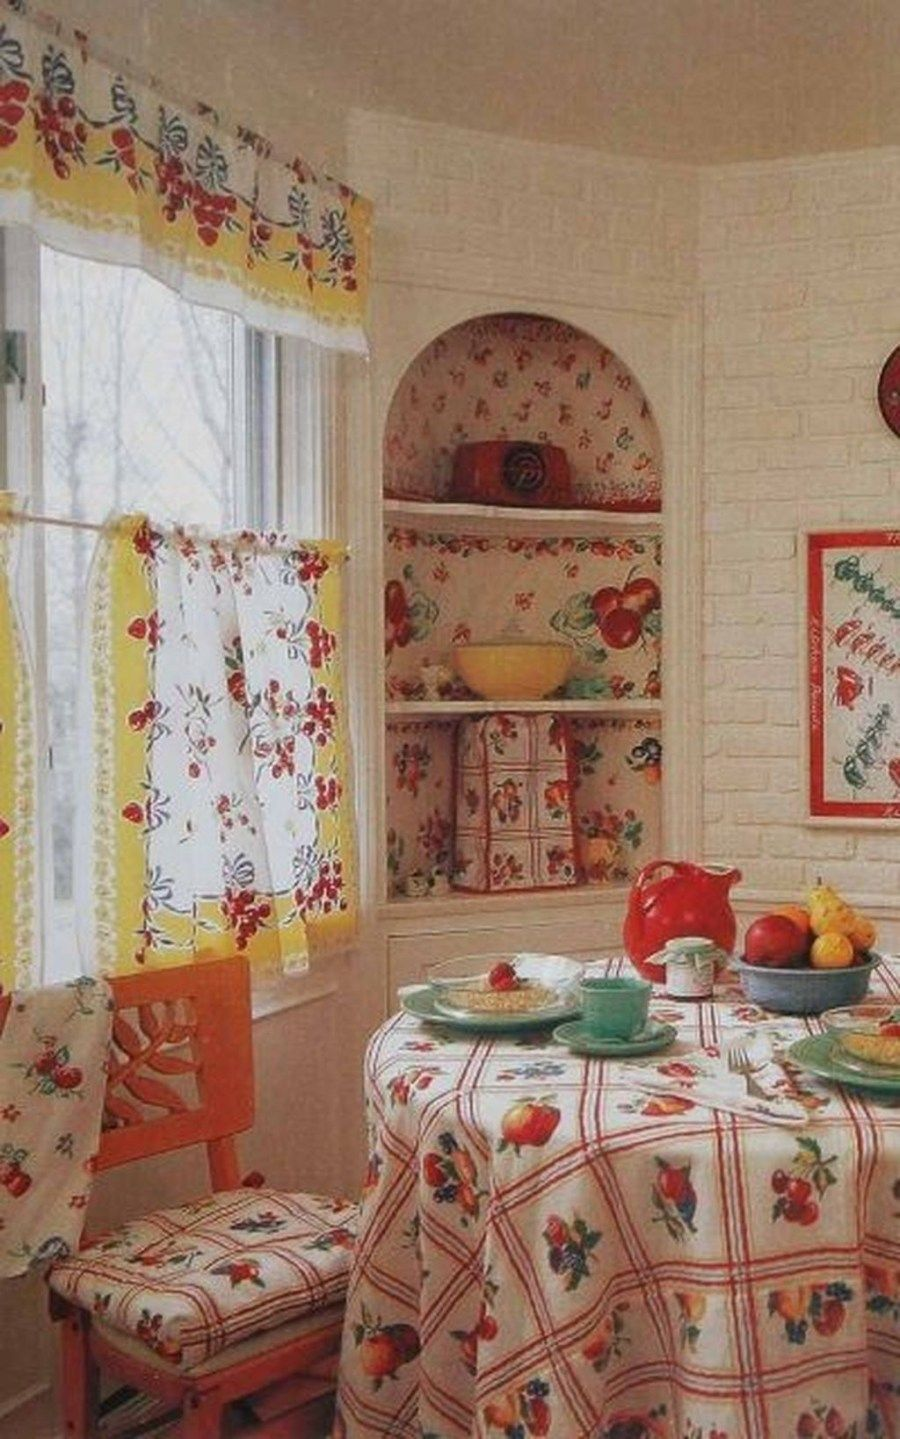 32 Beautiful Vintage Kitchen Decorations Ideas To Make A Nice Look - Trendehouse #vintagekitchen